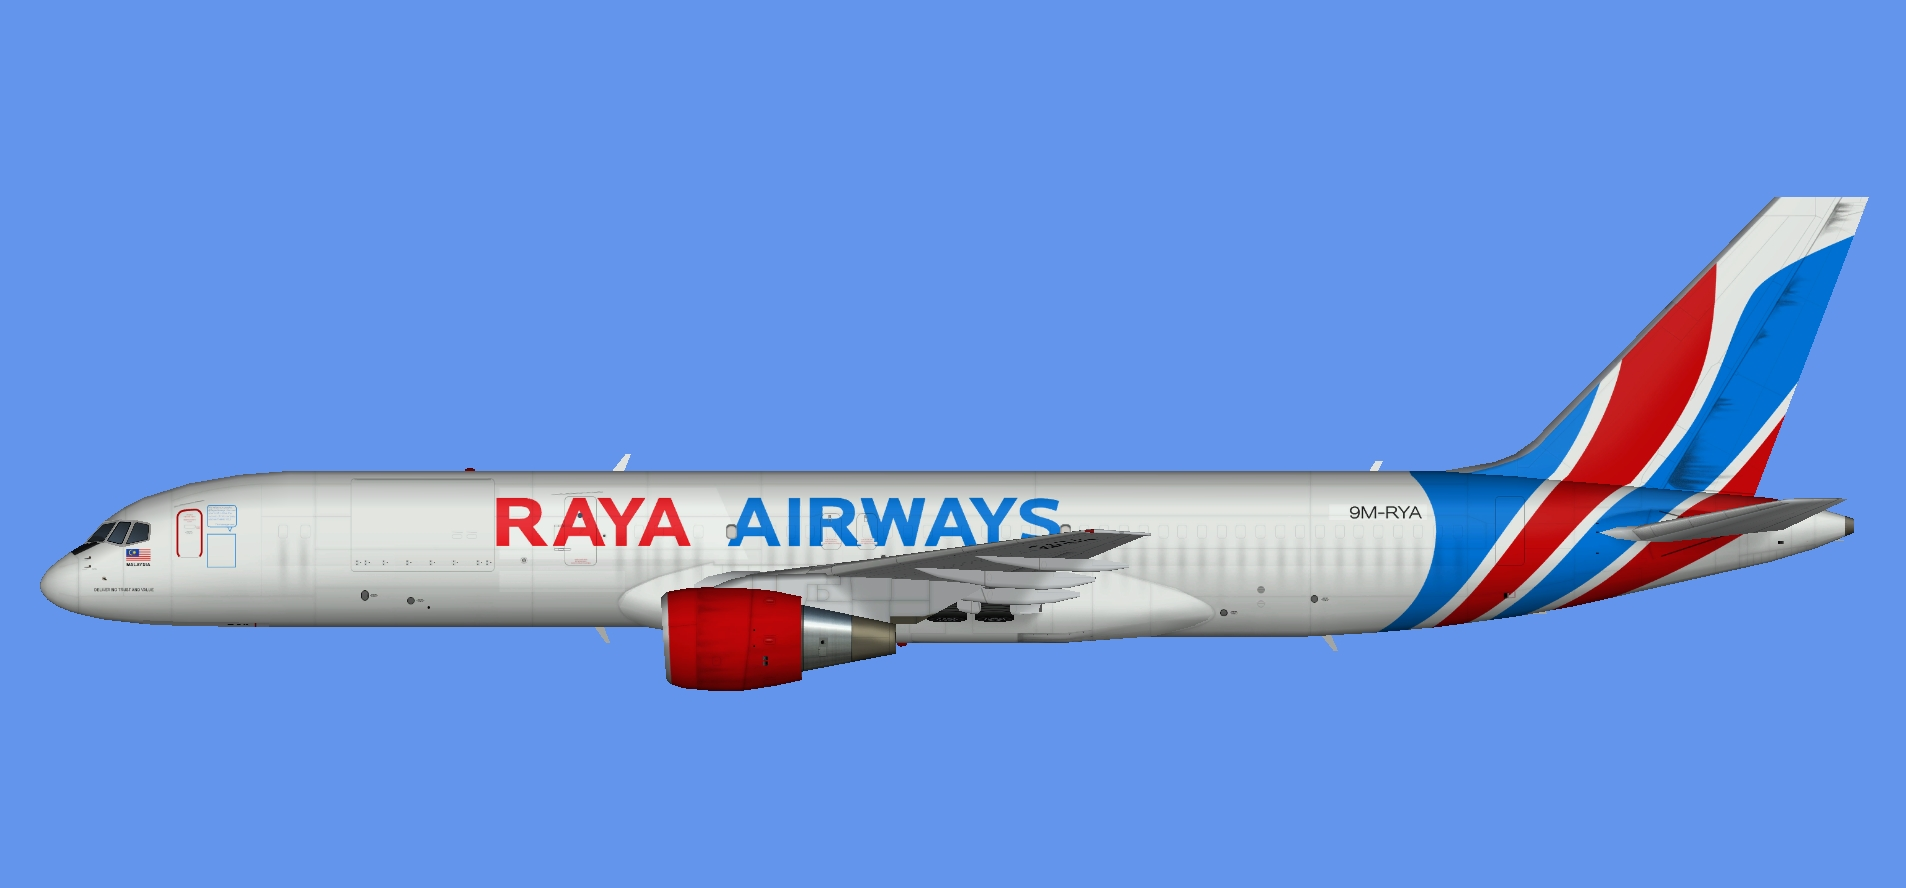 Raya Airways Boeing 757